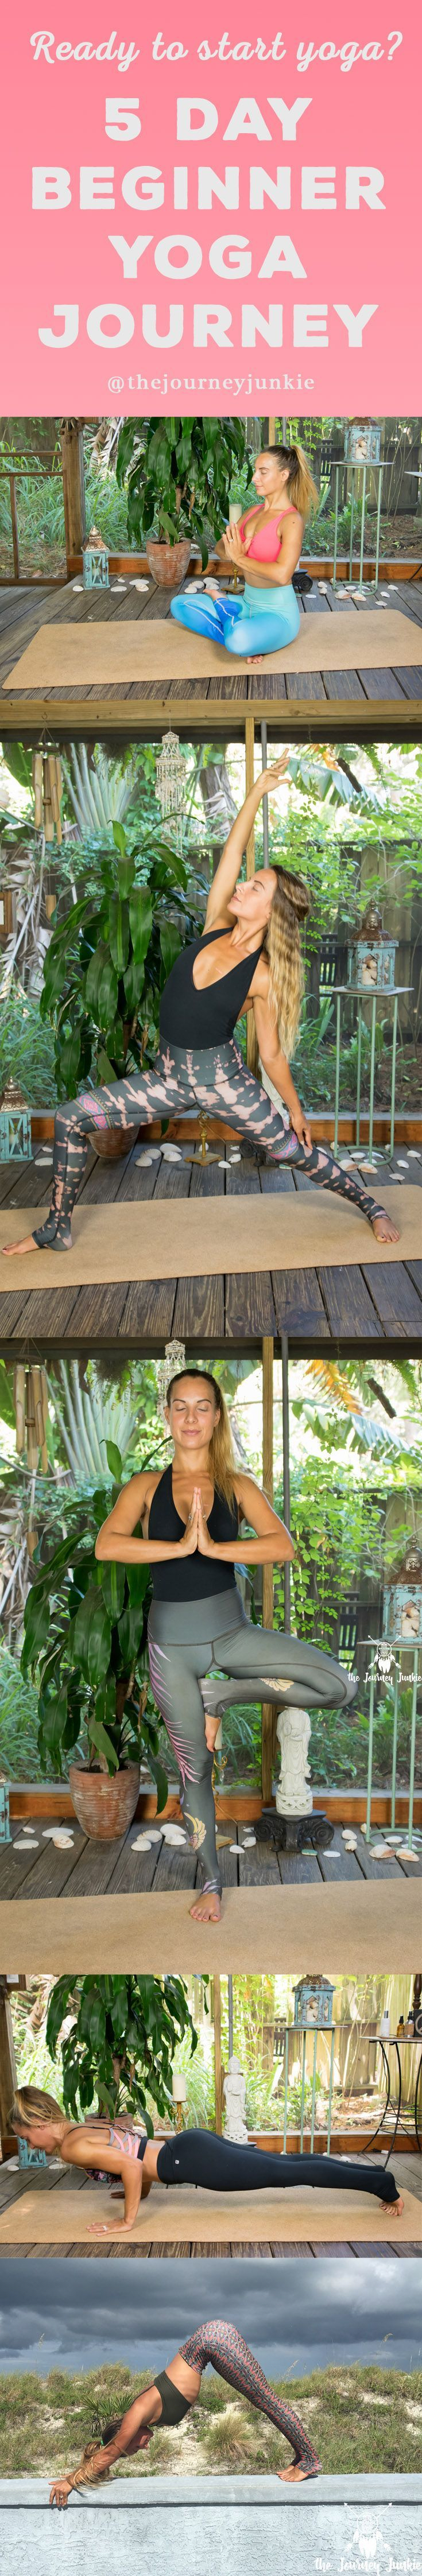 Do you want to start yoga, but don't know how? Join me for a 5 day yoga jour...